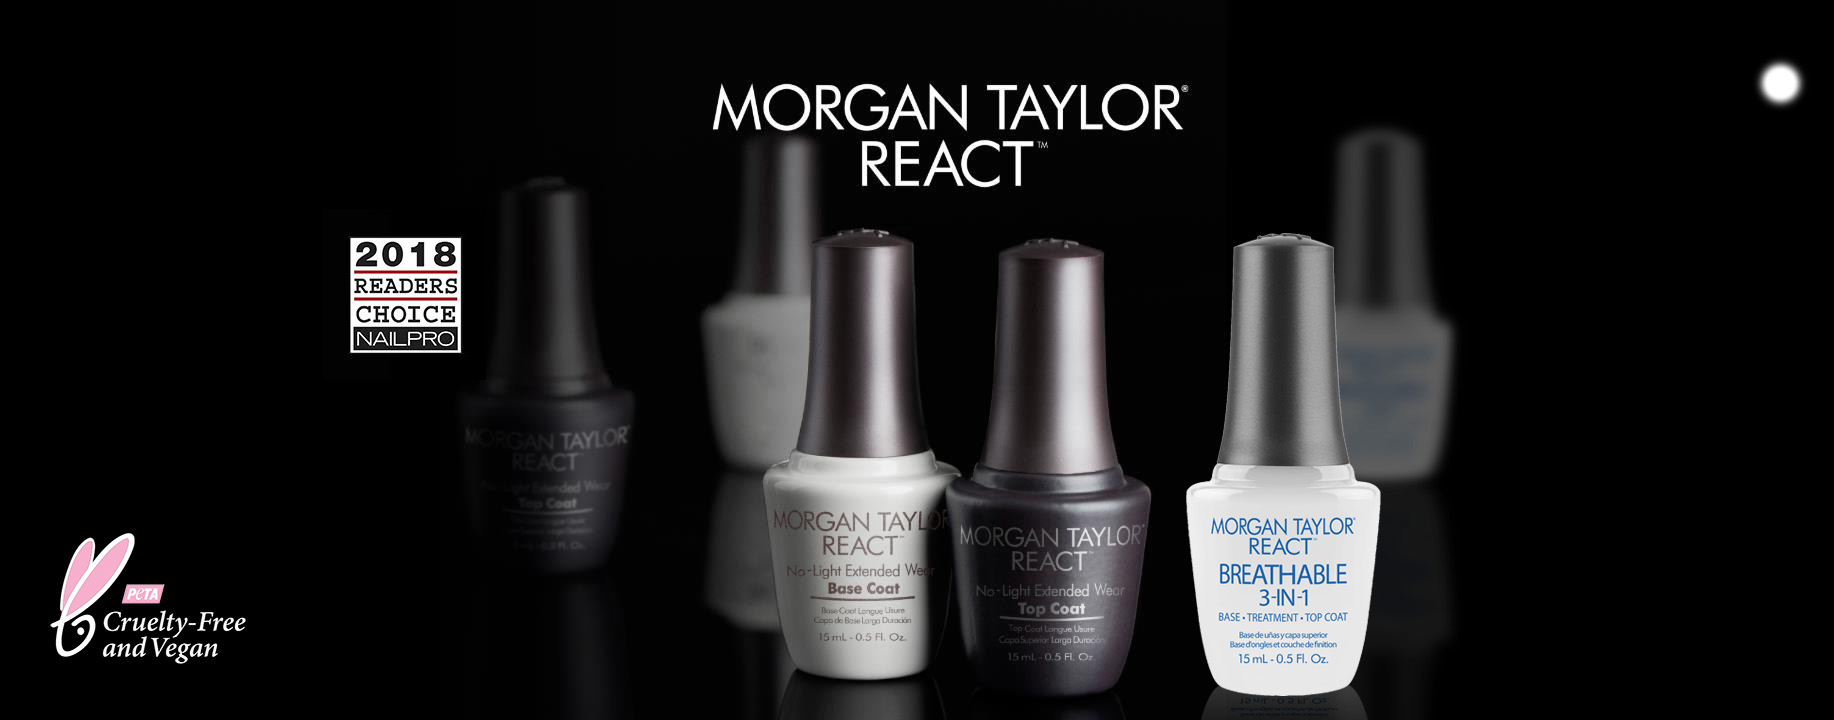 Morgan Taylor React